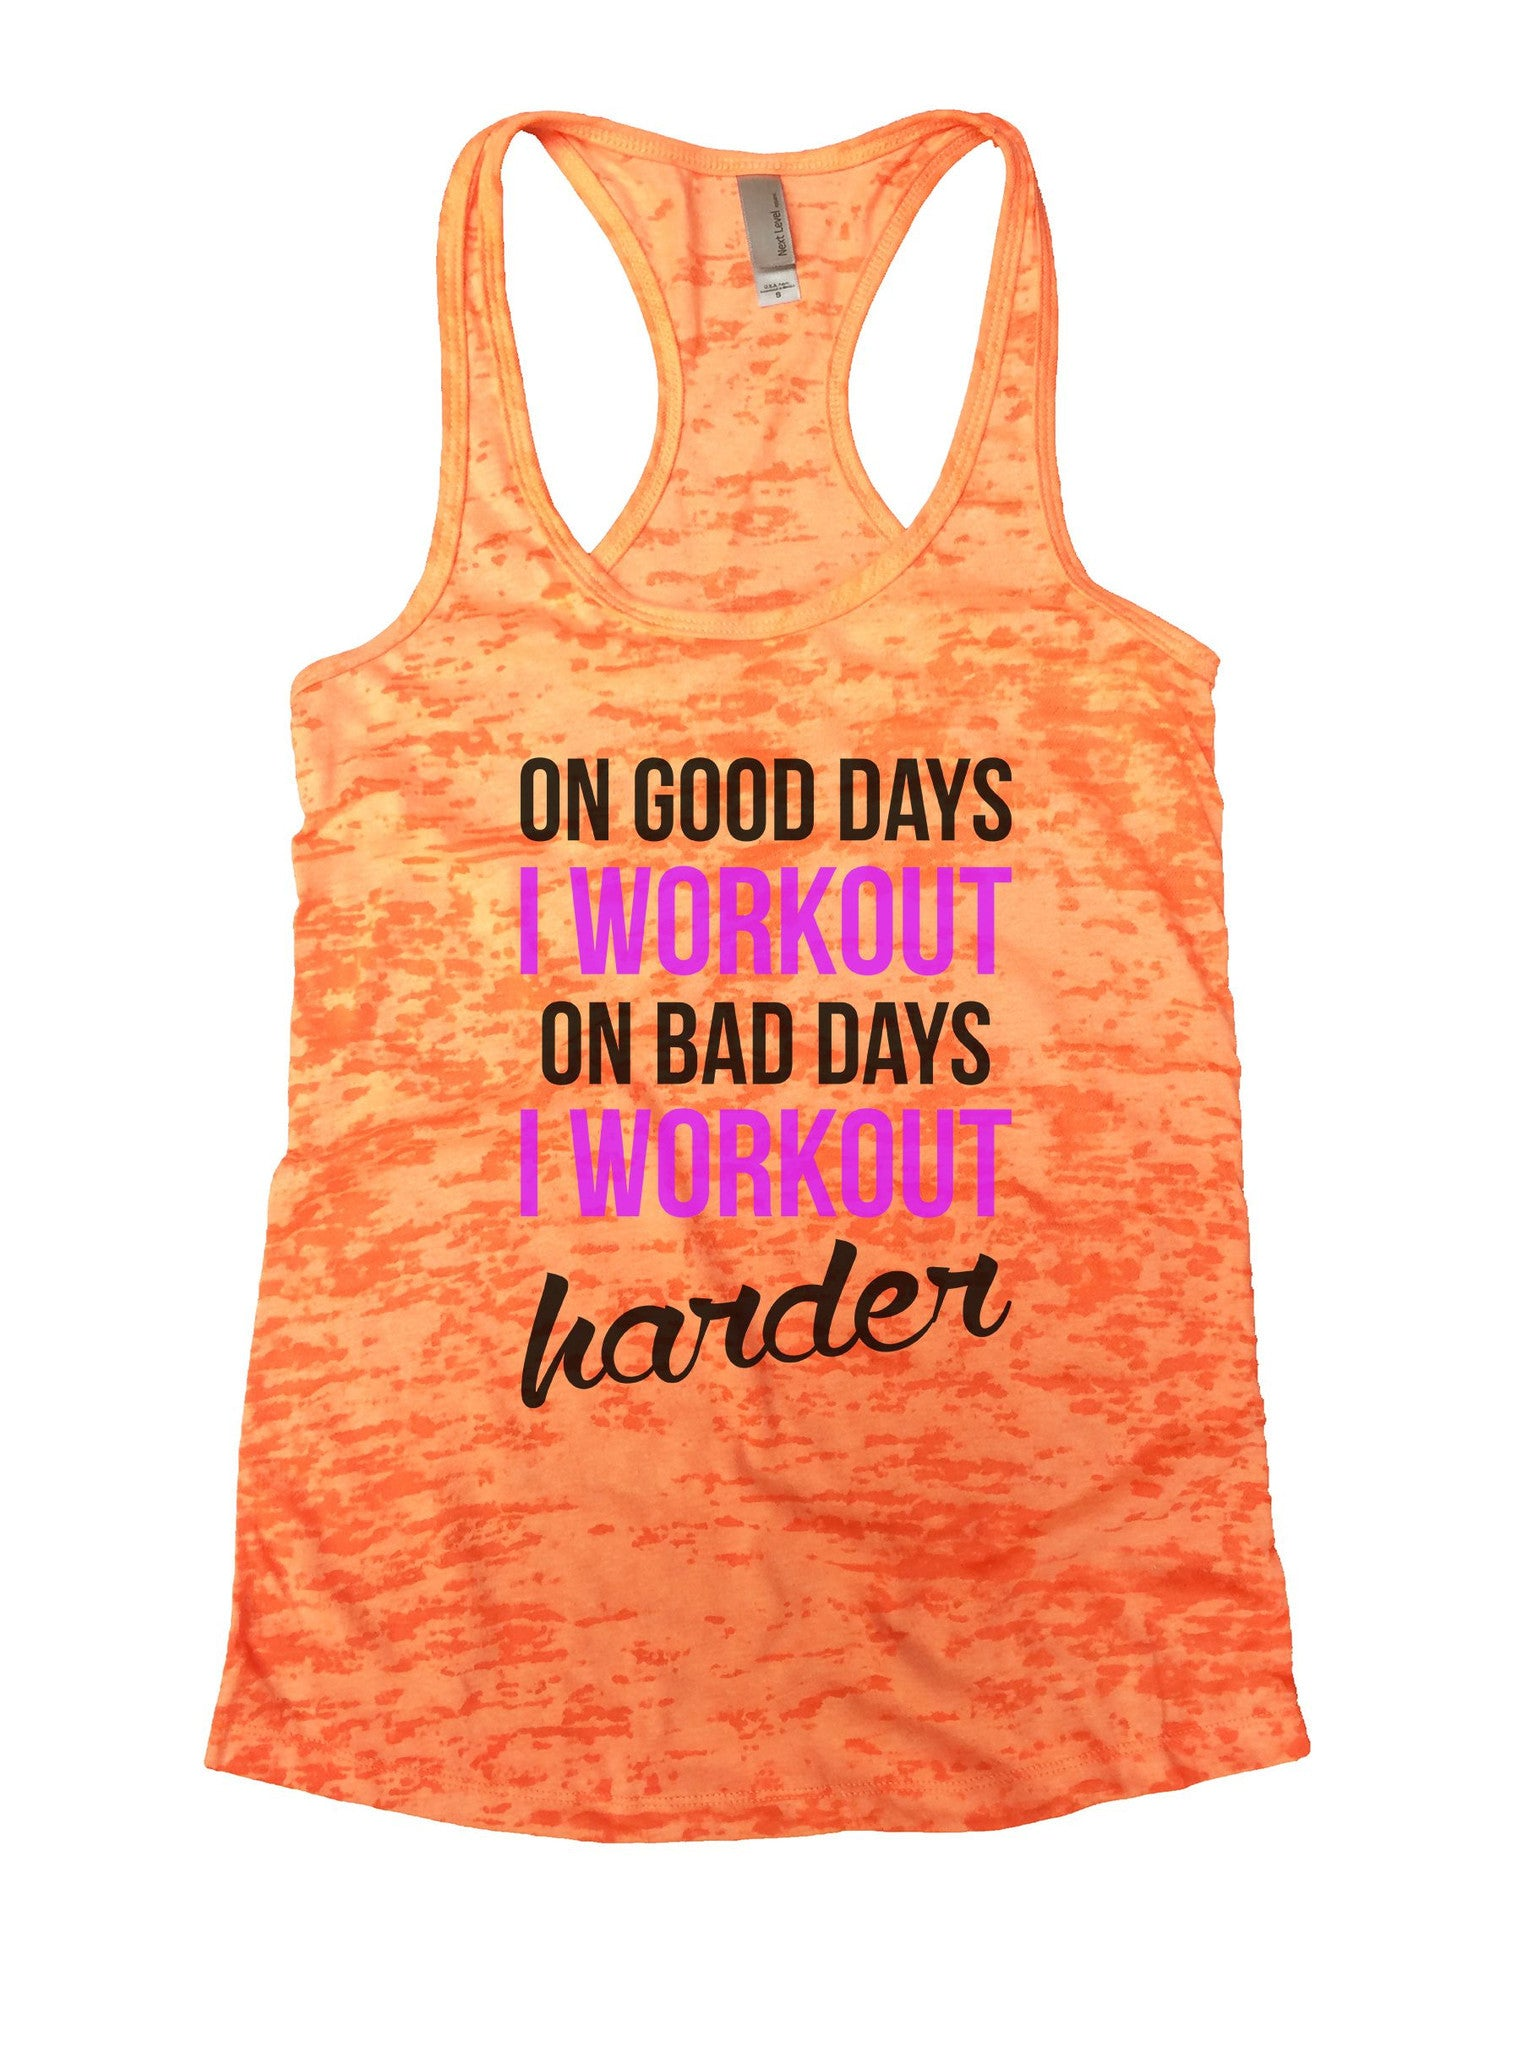 On Good Days I Workout On Bad Days I Workout Harder Burnout Tank Top By BurnoutTankTops.com - 850 - Funny Shirts Tank Tops Burnouts and Triblends  - 3